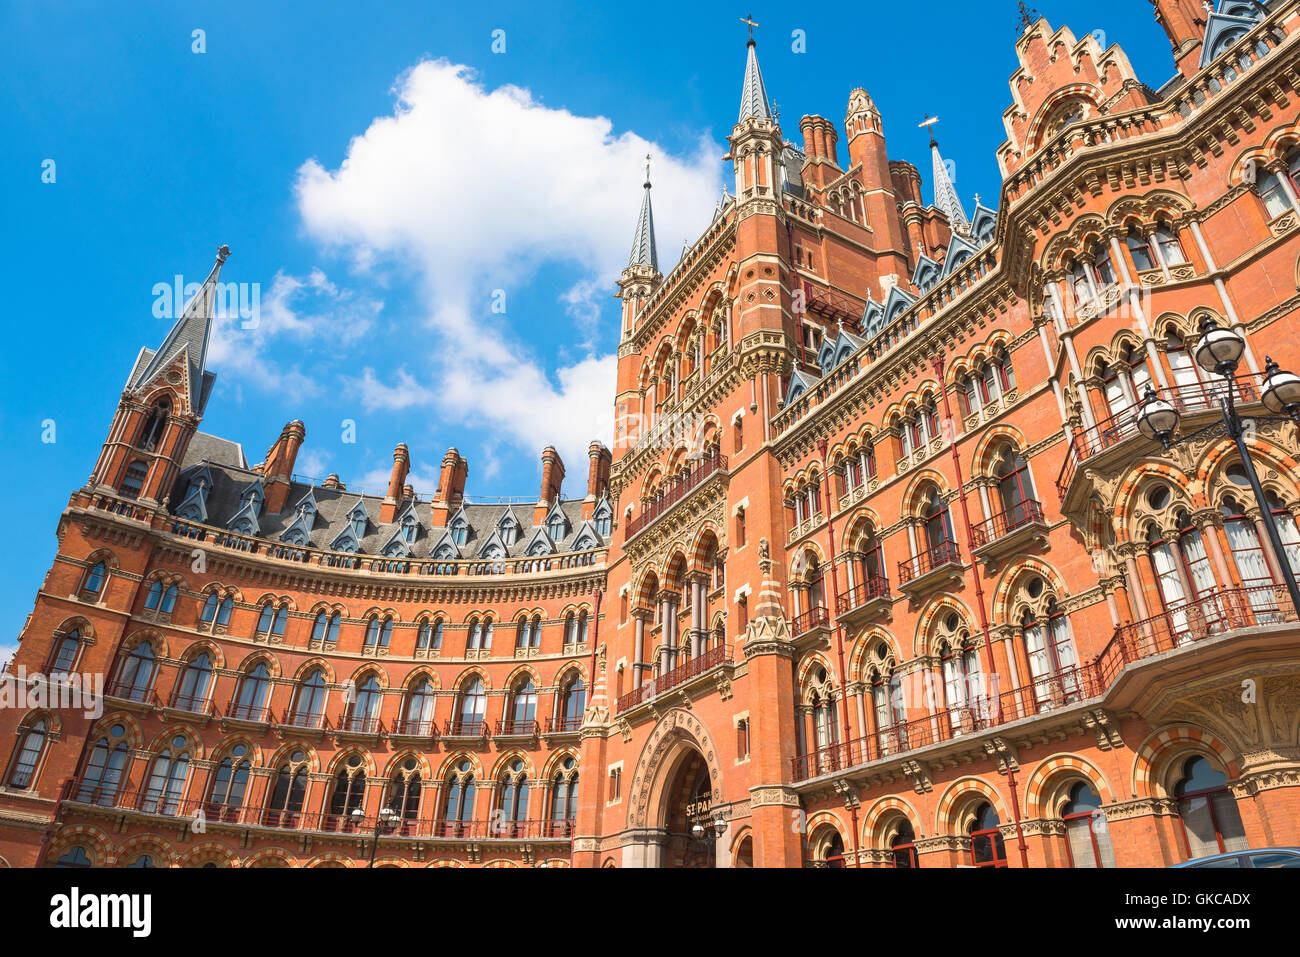 Victorian architecture, London, the Victorian Gothic Revival style St Pancras Hotel at King's Cross, London,UK. - Stock Image